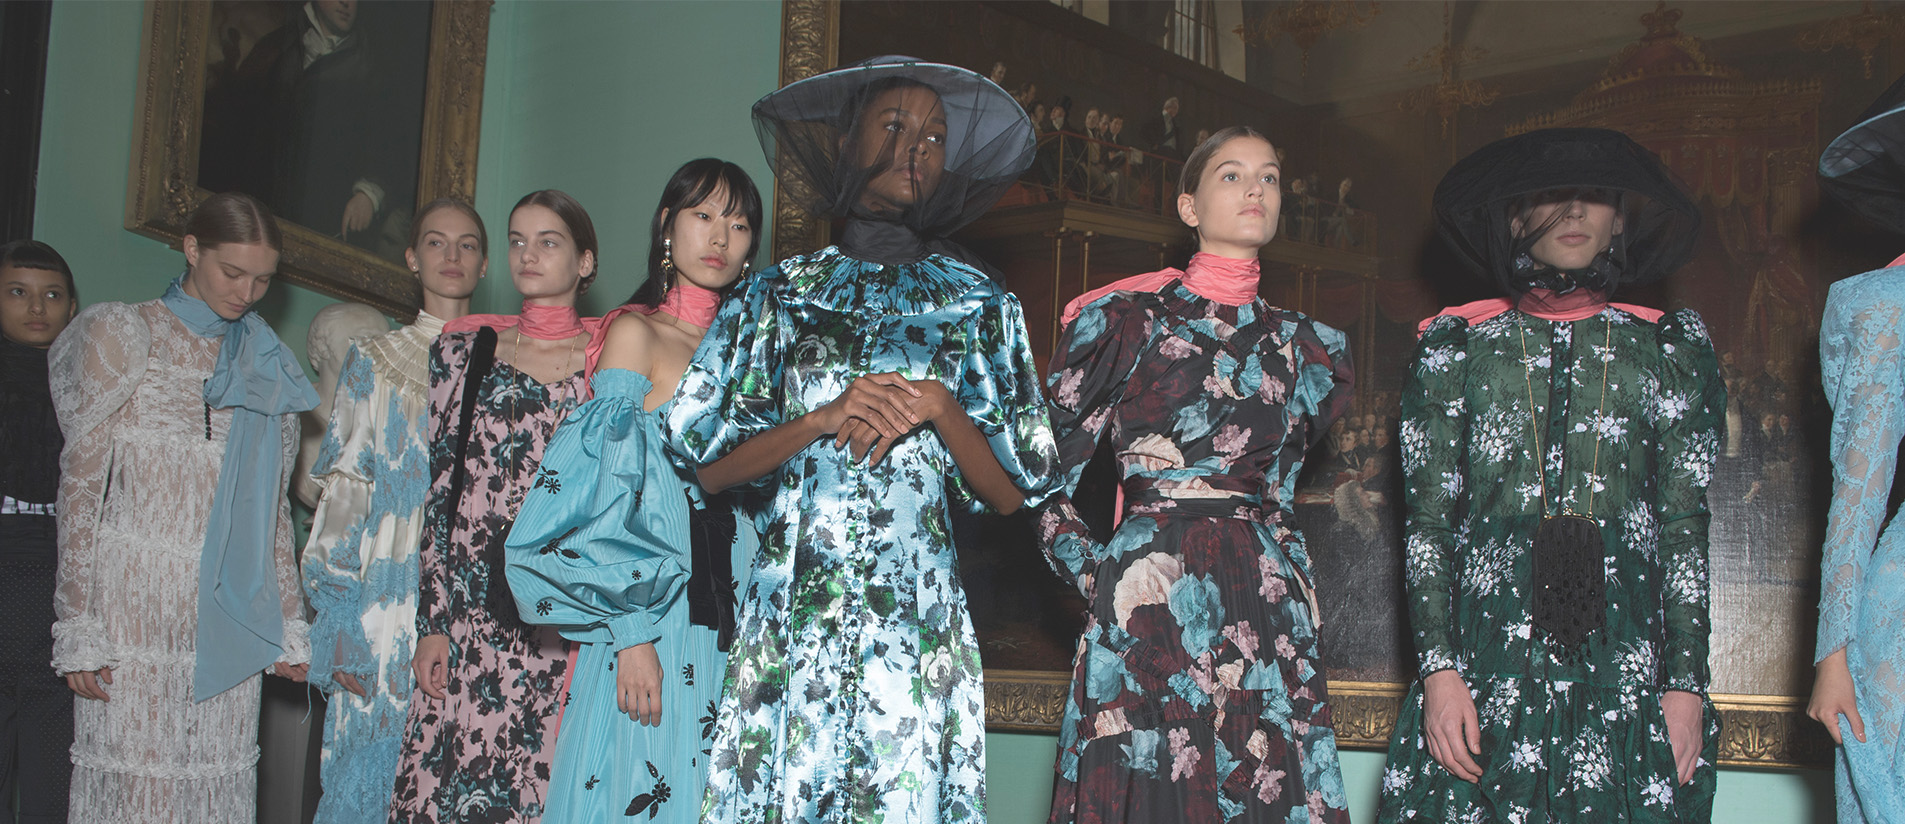 Victorian gowns from Erdem's spring 2019 show